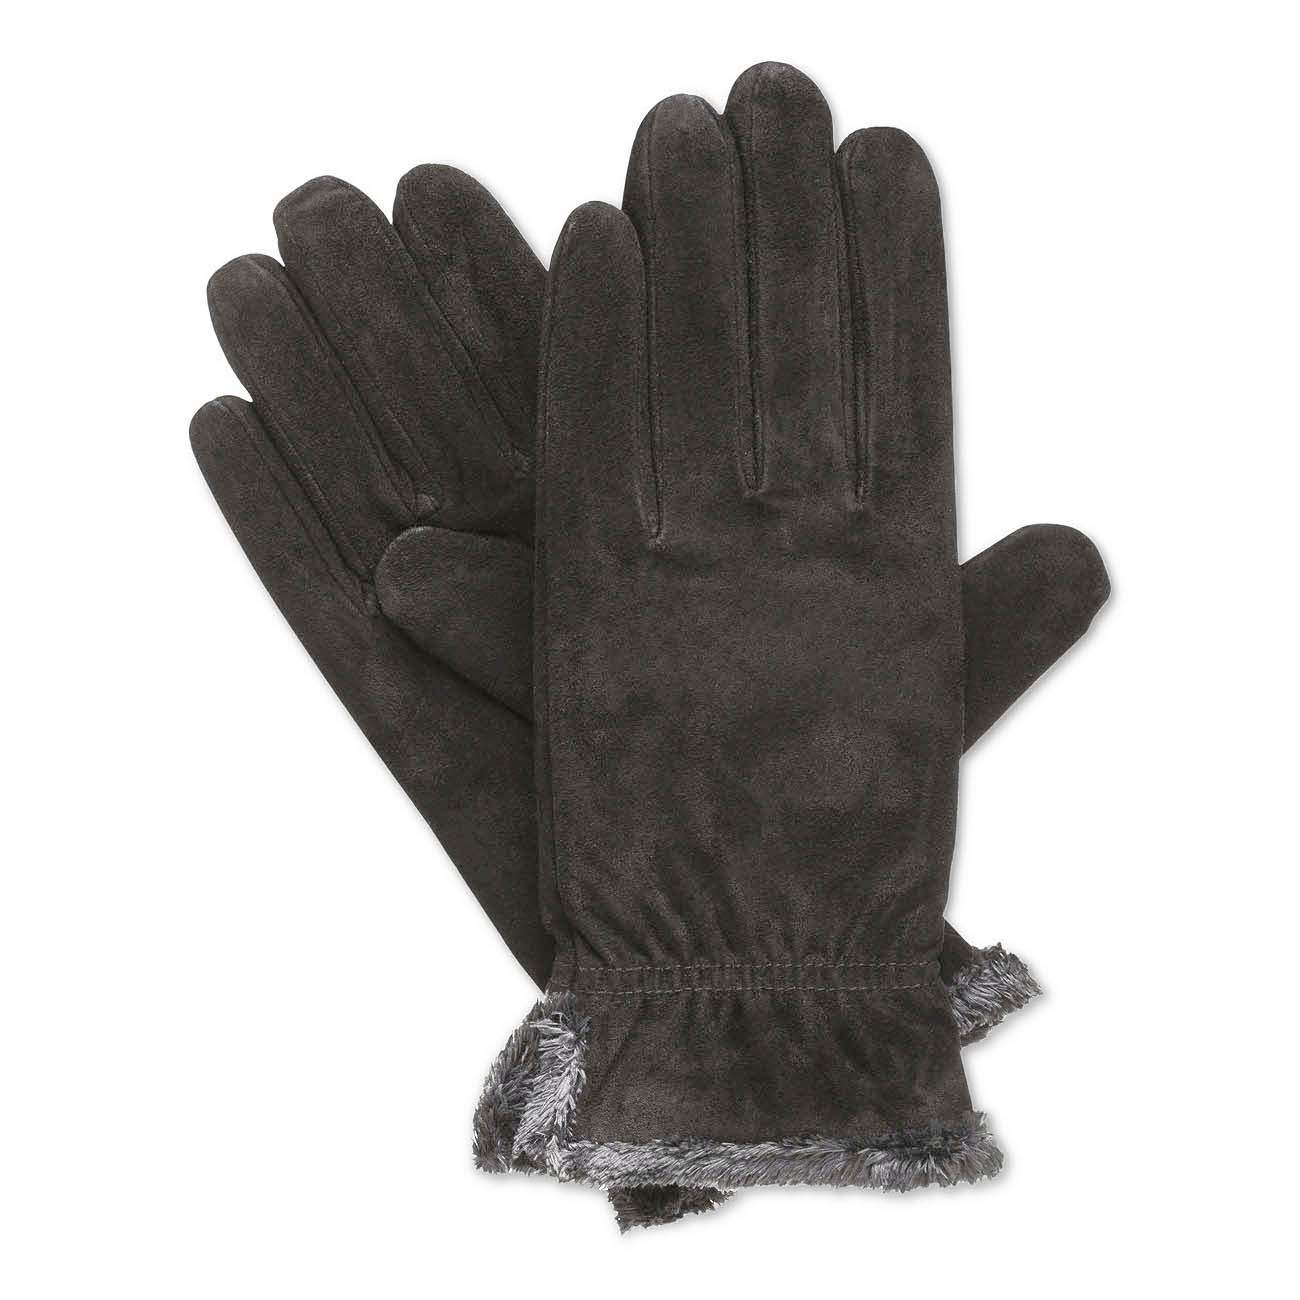 Womens black leather gloves medium - Picture 4 Of 12